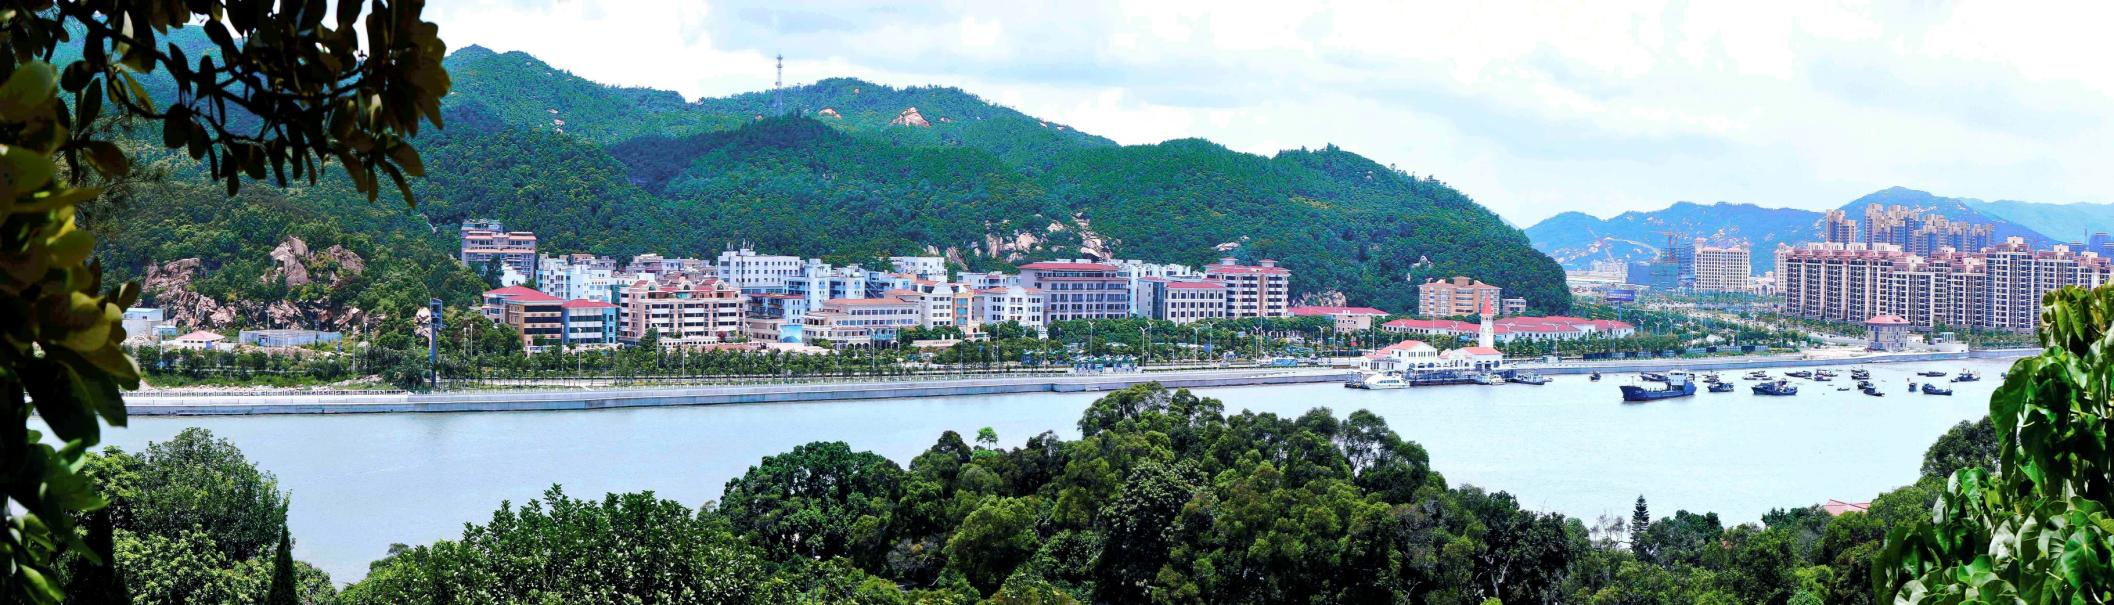 Zhuhai Hengqin Town Center General Renovation Plan